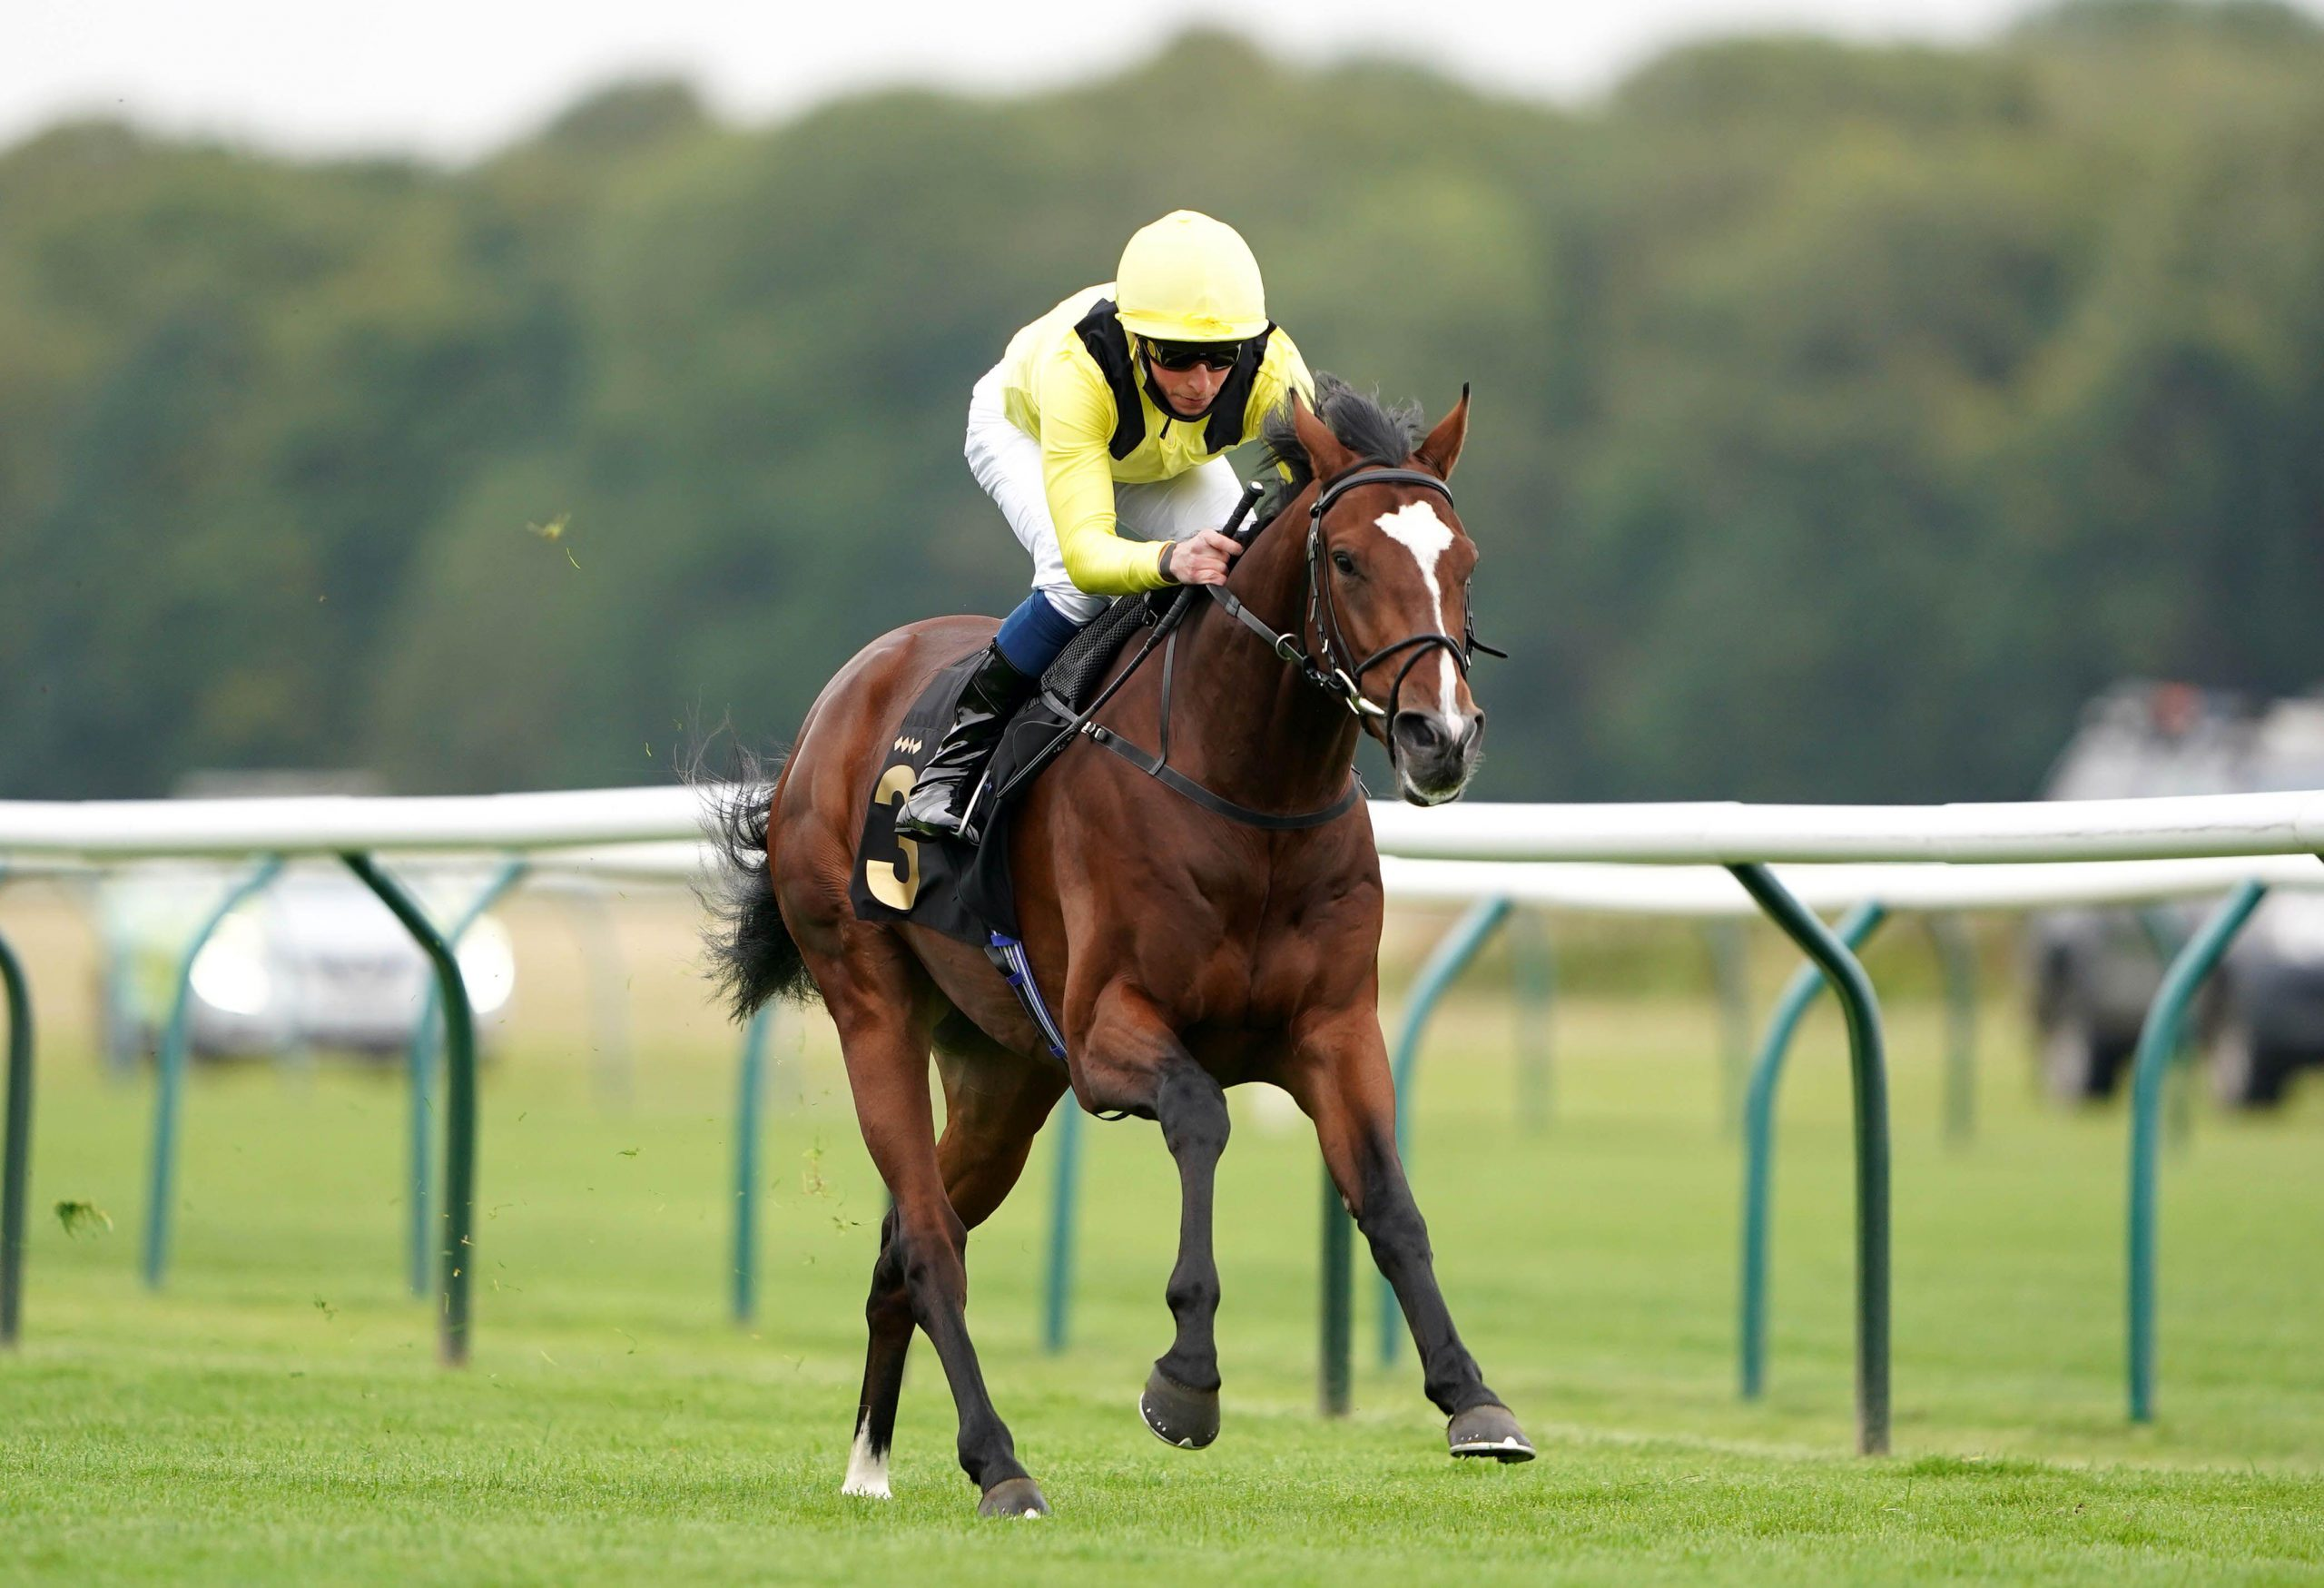 Aaddeey ridden by William Buick wins The Read Silvestre De Sousa Blog At starsportsbet.co.uk Novice Stakes at Nottingham Racecourse.